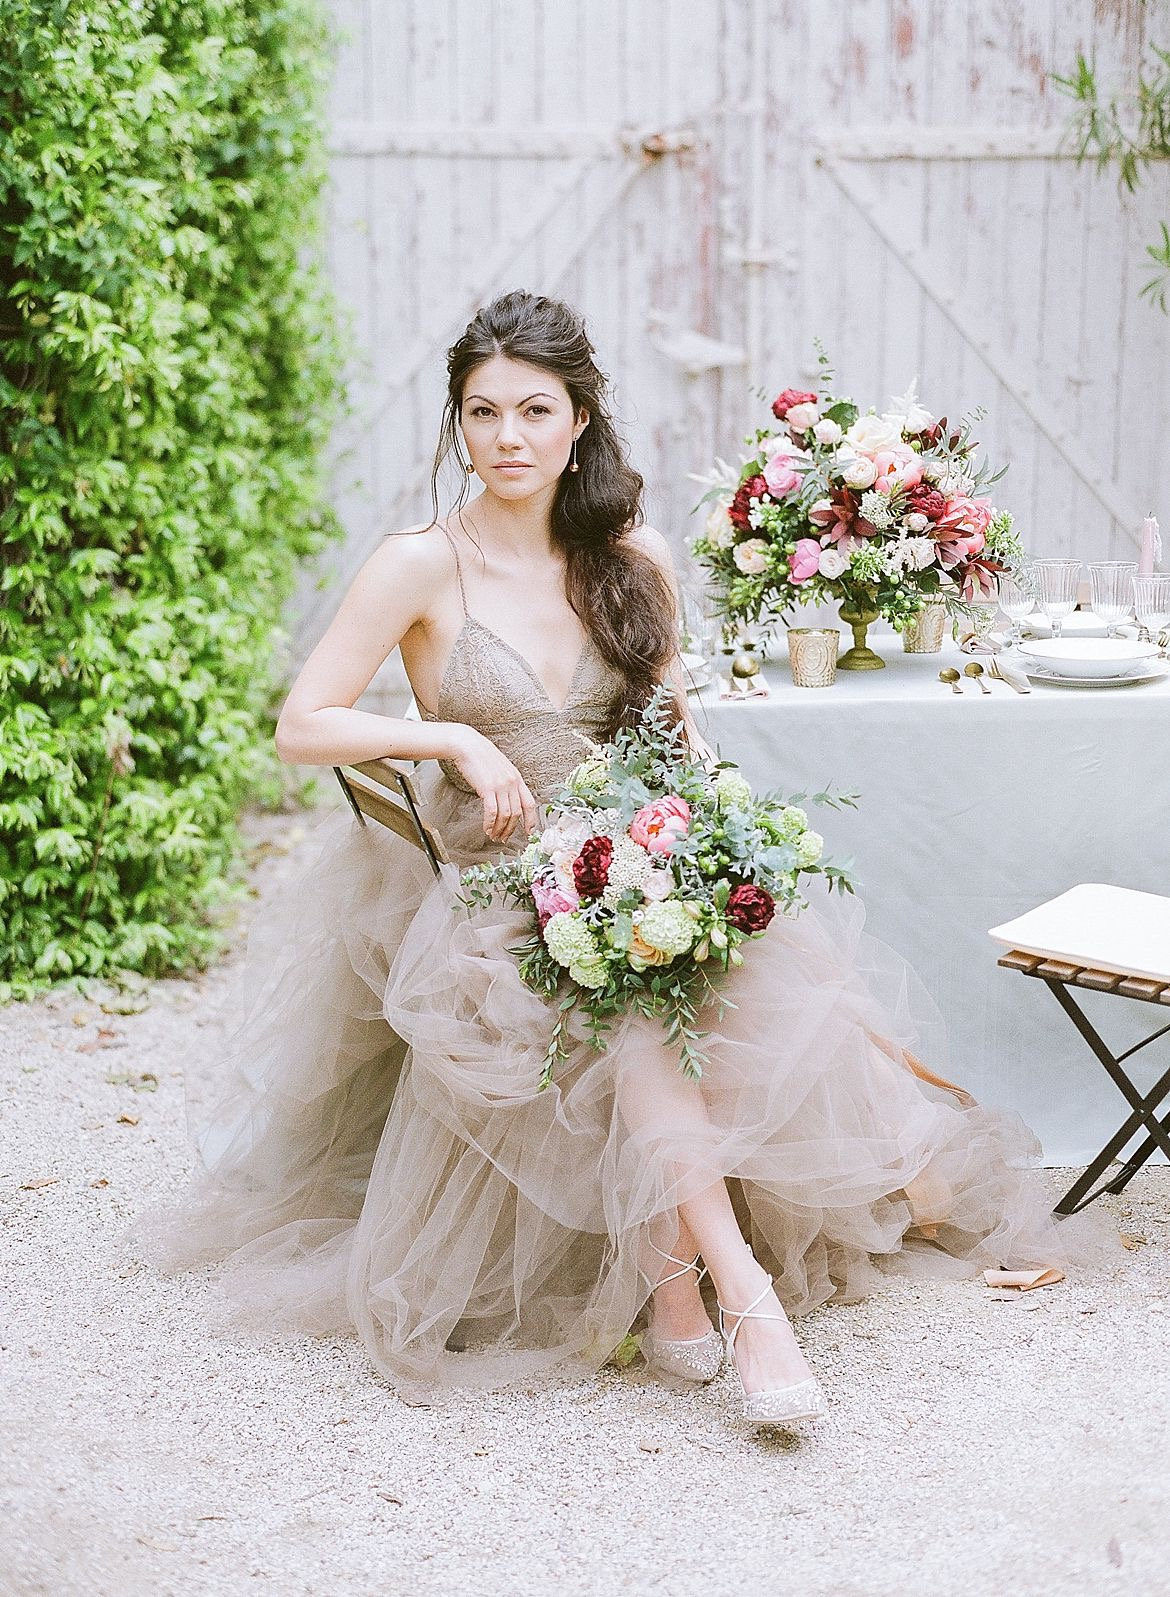 Southern France Wedding Inspiration